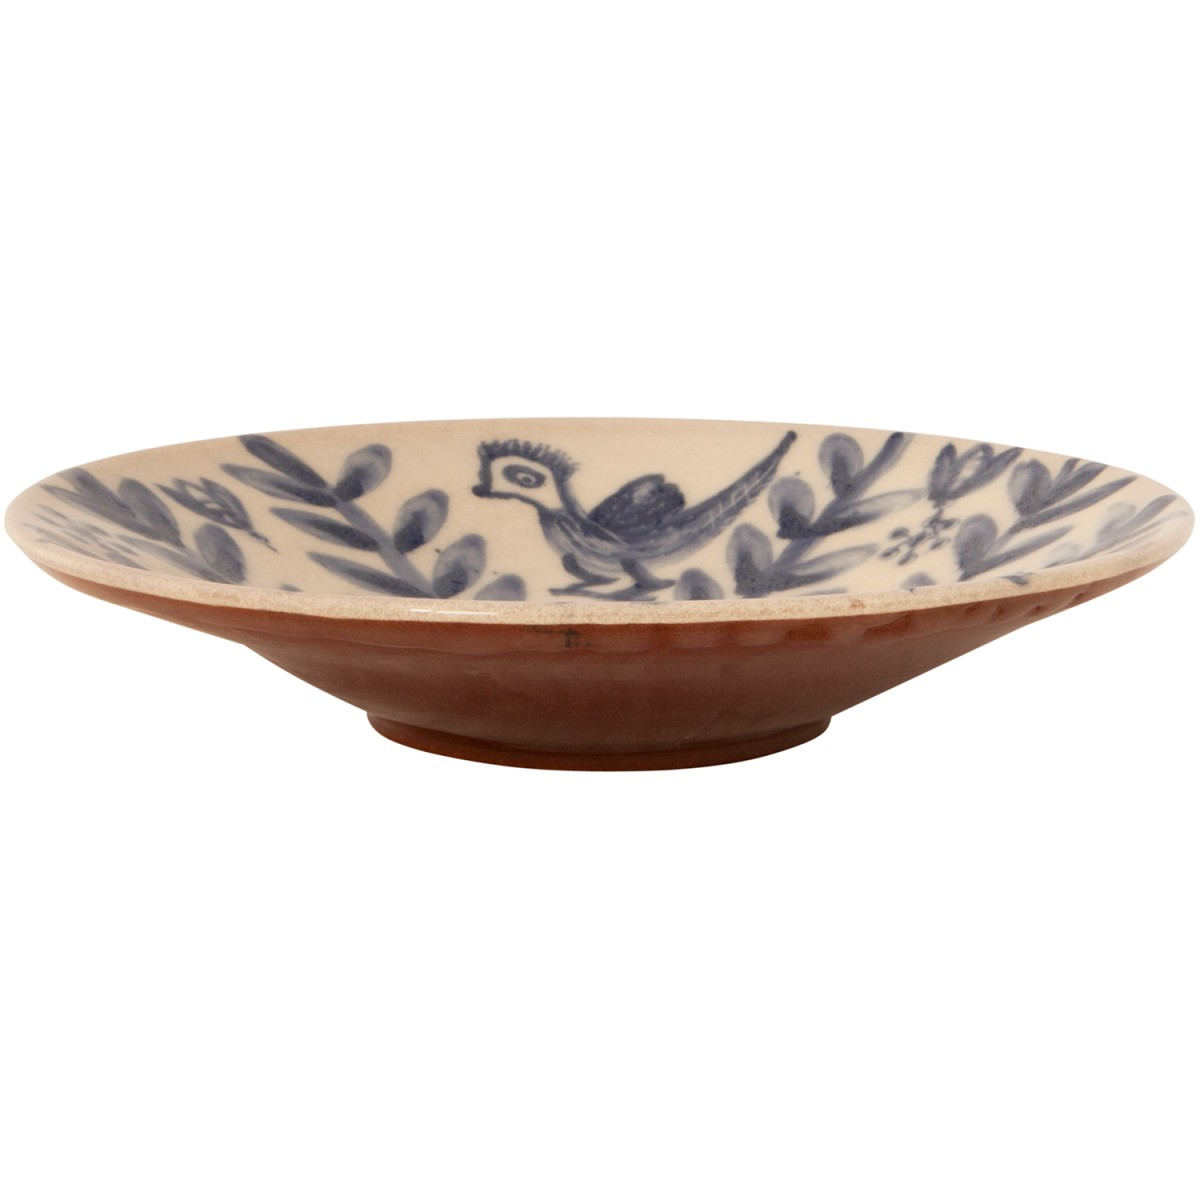 Decorative bowls for tables-Bird on Flower-1